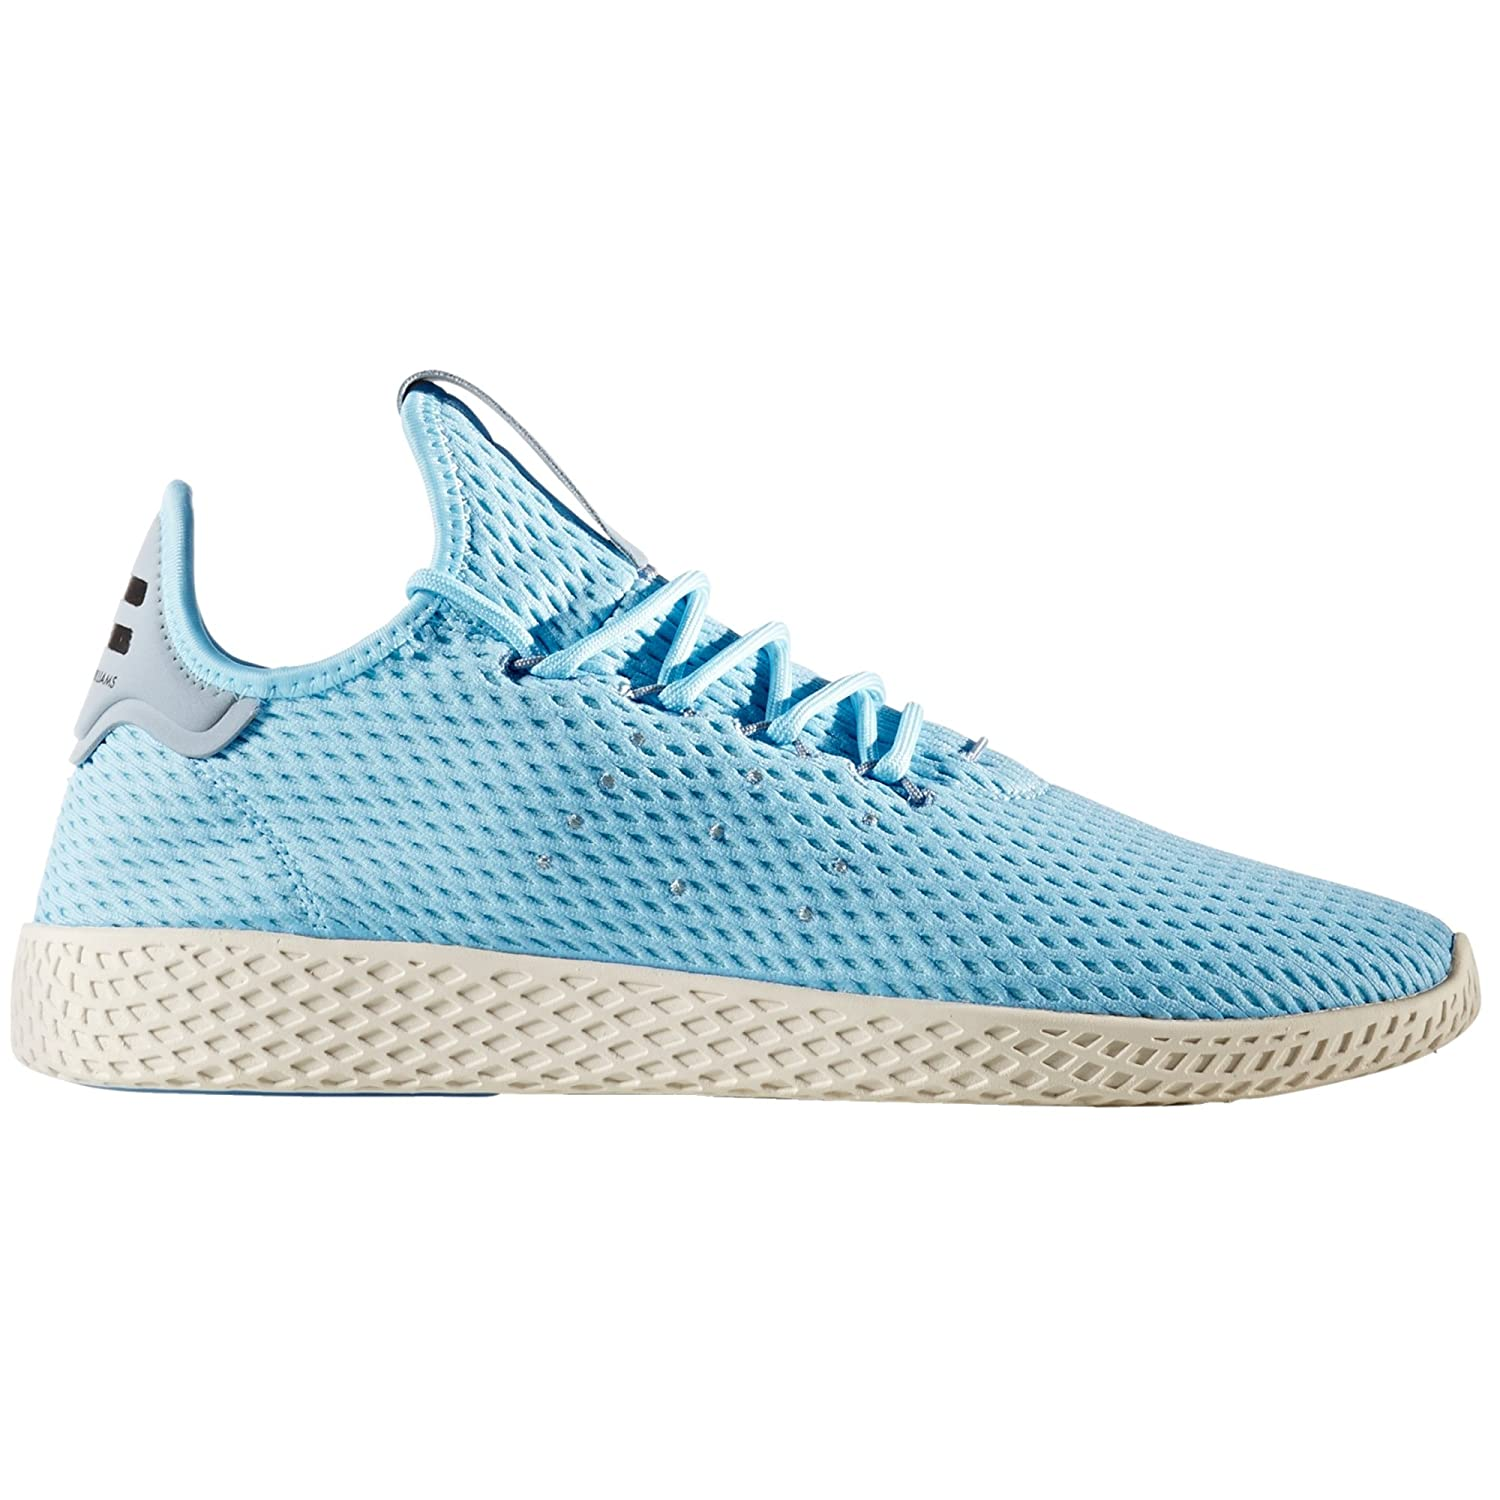 03822b38fe0b4 adidas Originals Pharrell Williams Tennis hu Blue and Green DA9618 ...